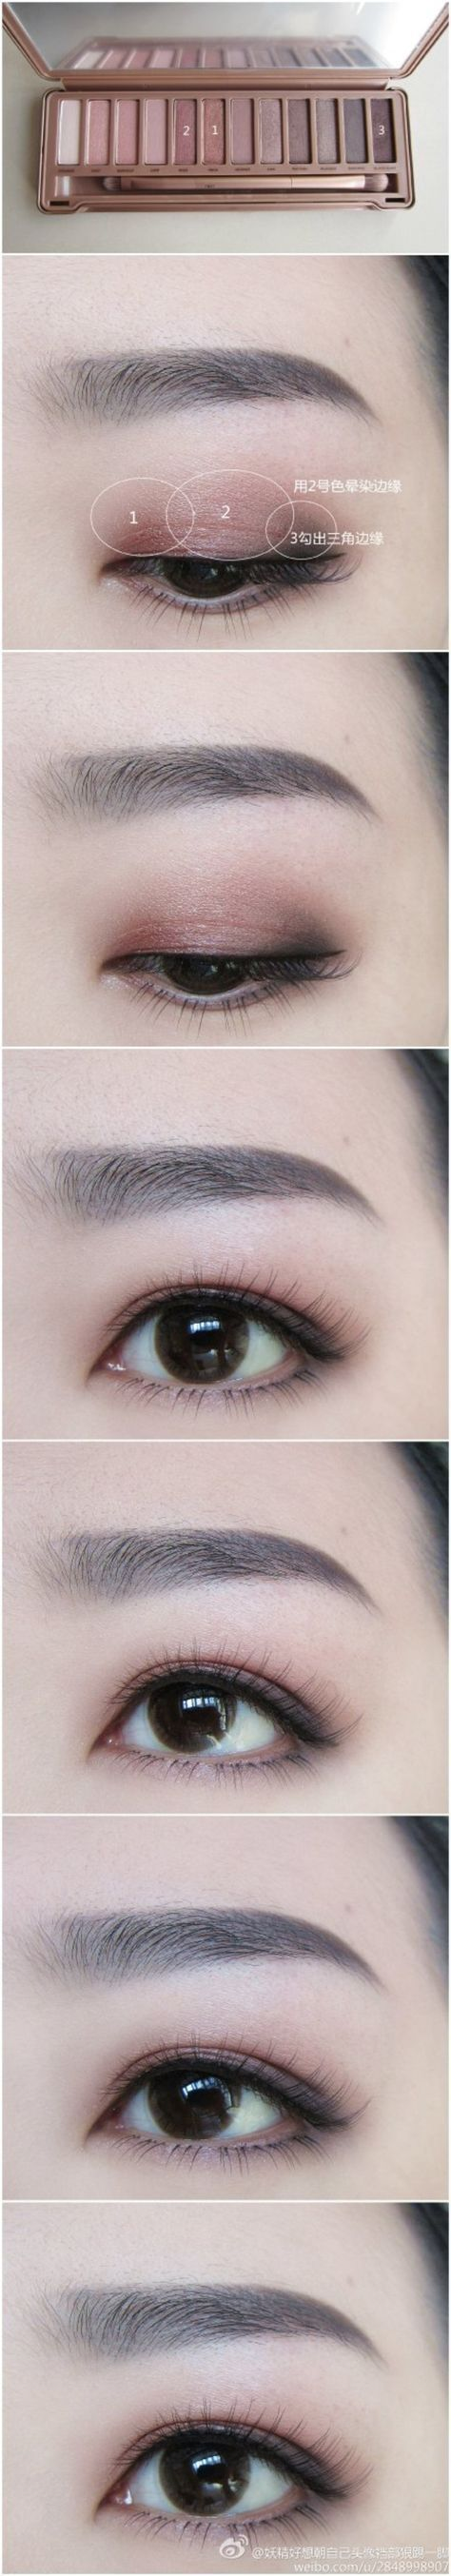 Asian makeup using color eye contact lenses #circlelens. SHOP from www.eyecandys.com